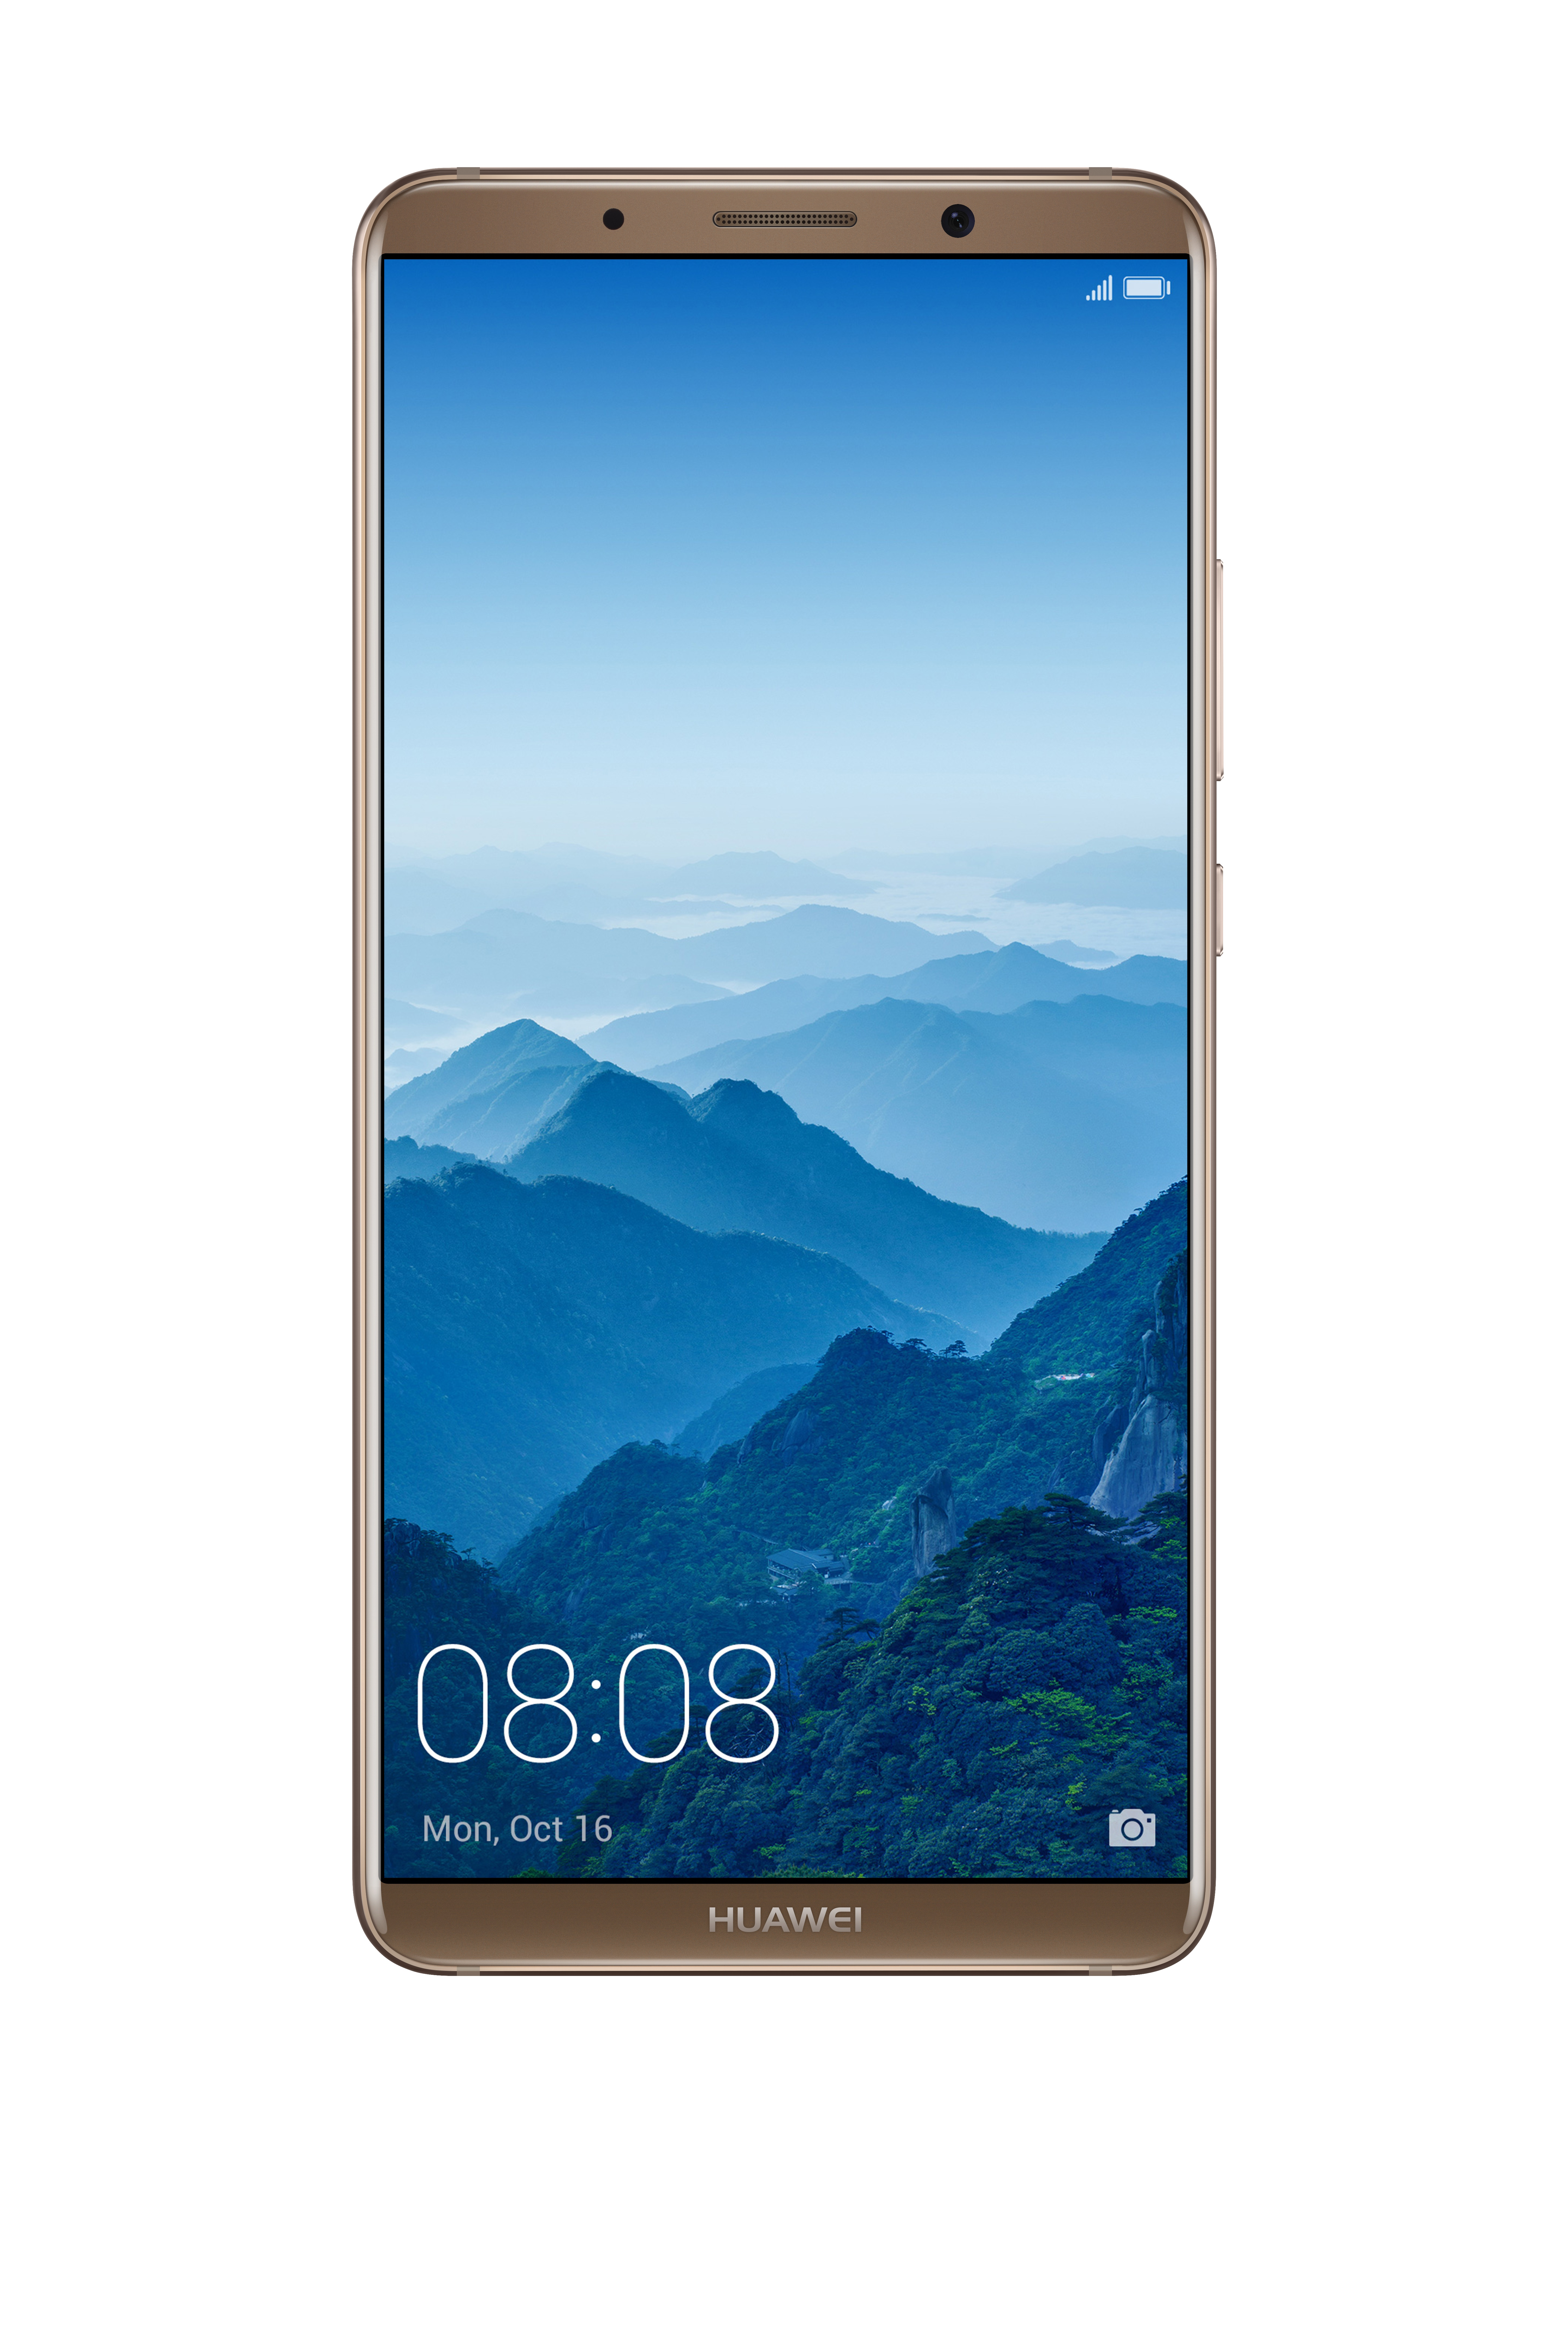 HUAWEI MATE 10 PRO DS, MOCHA BROWN